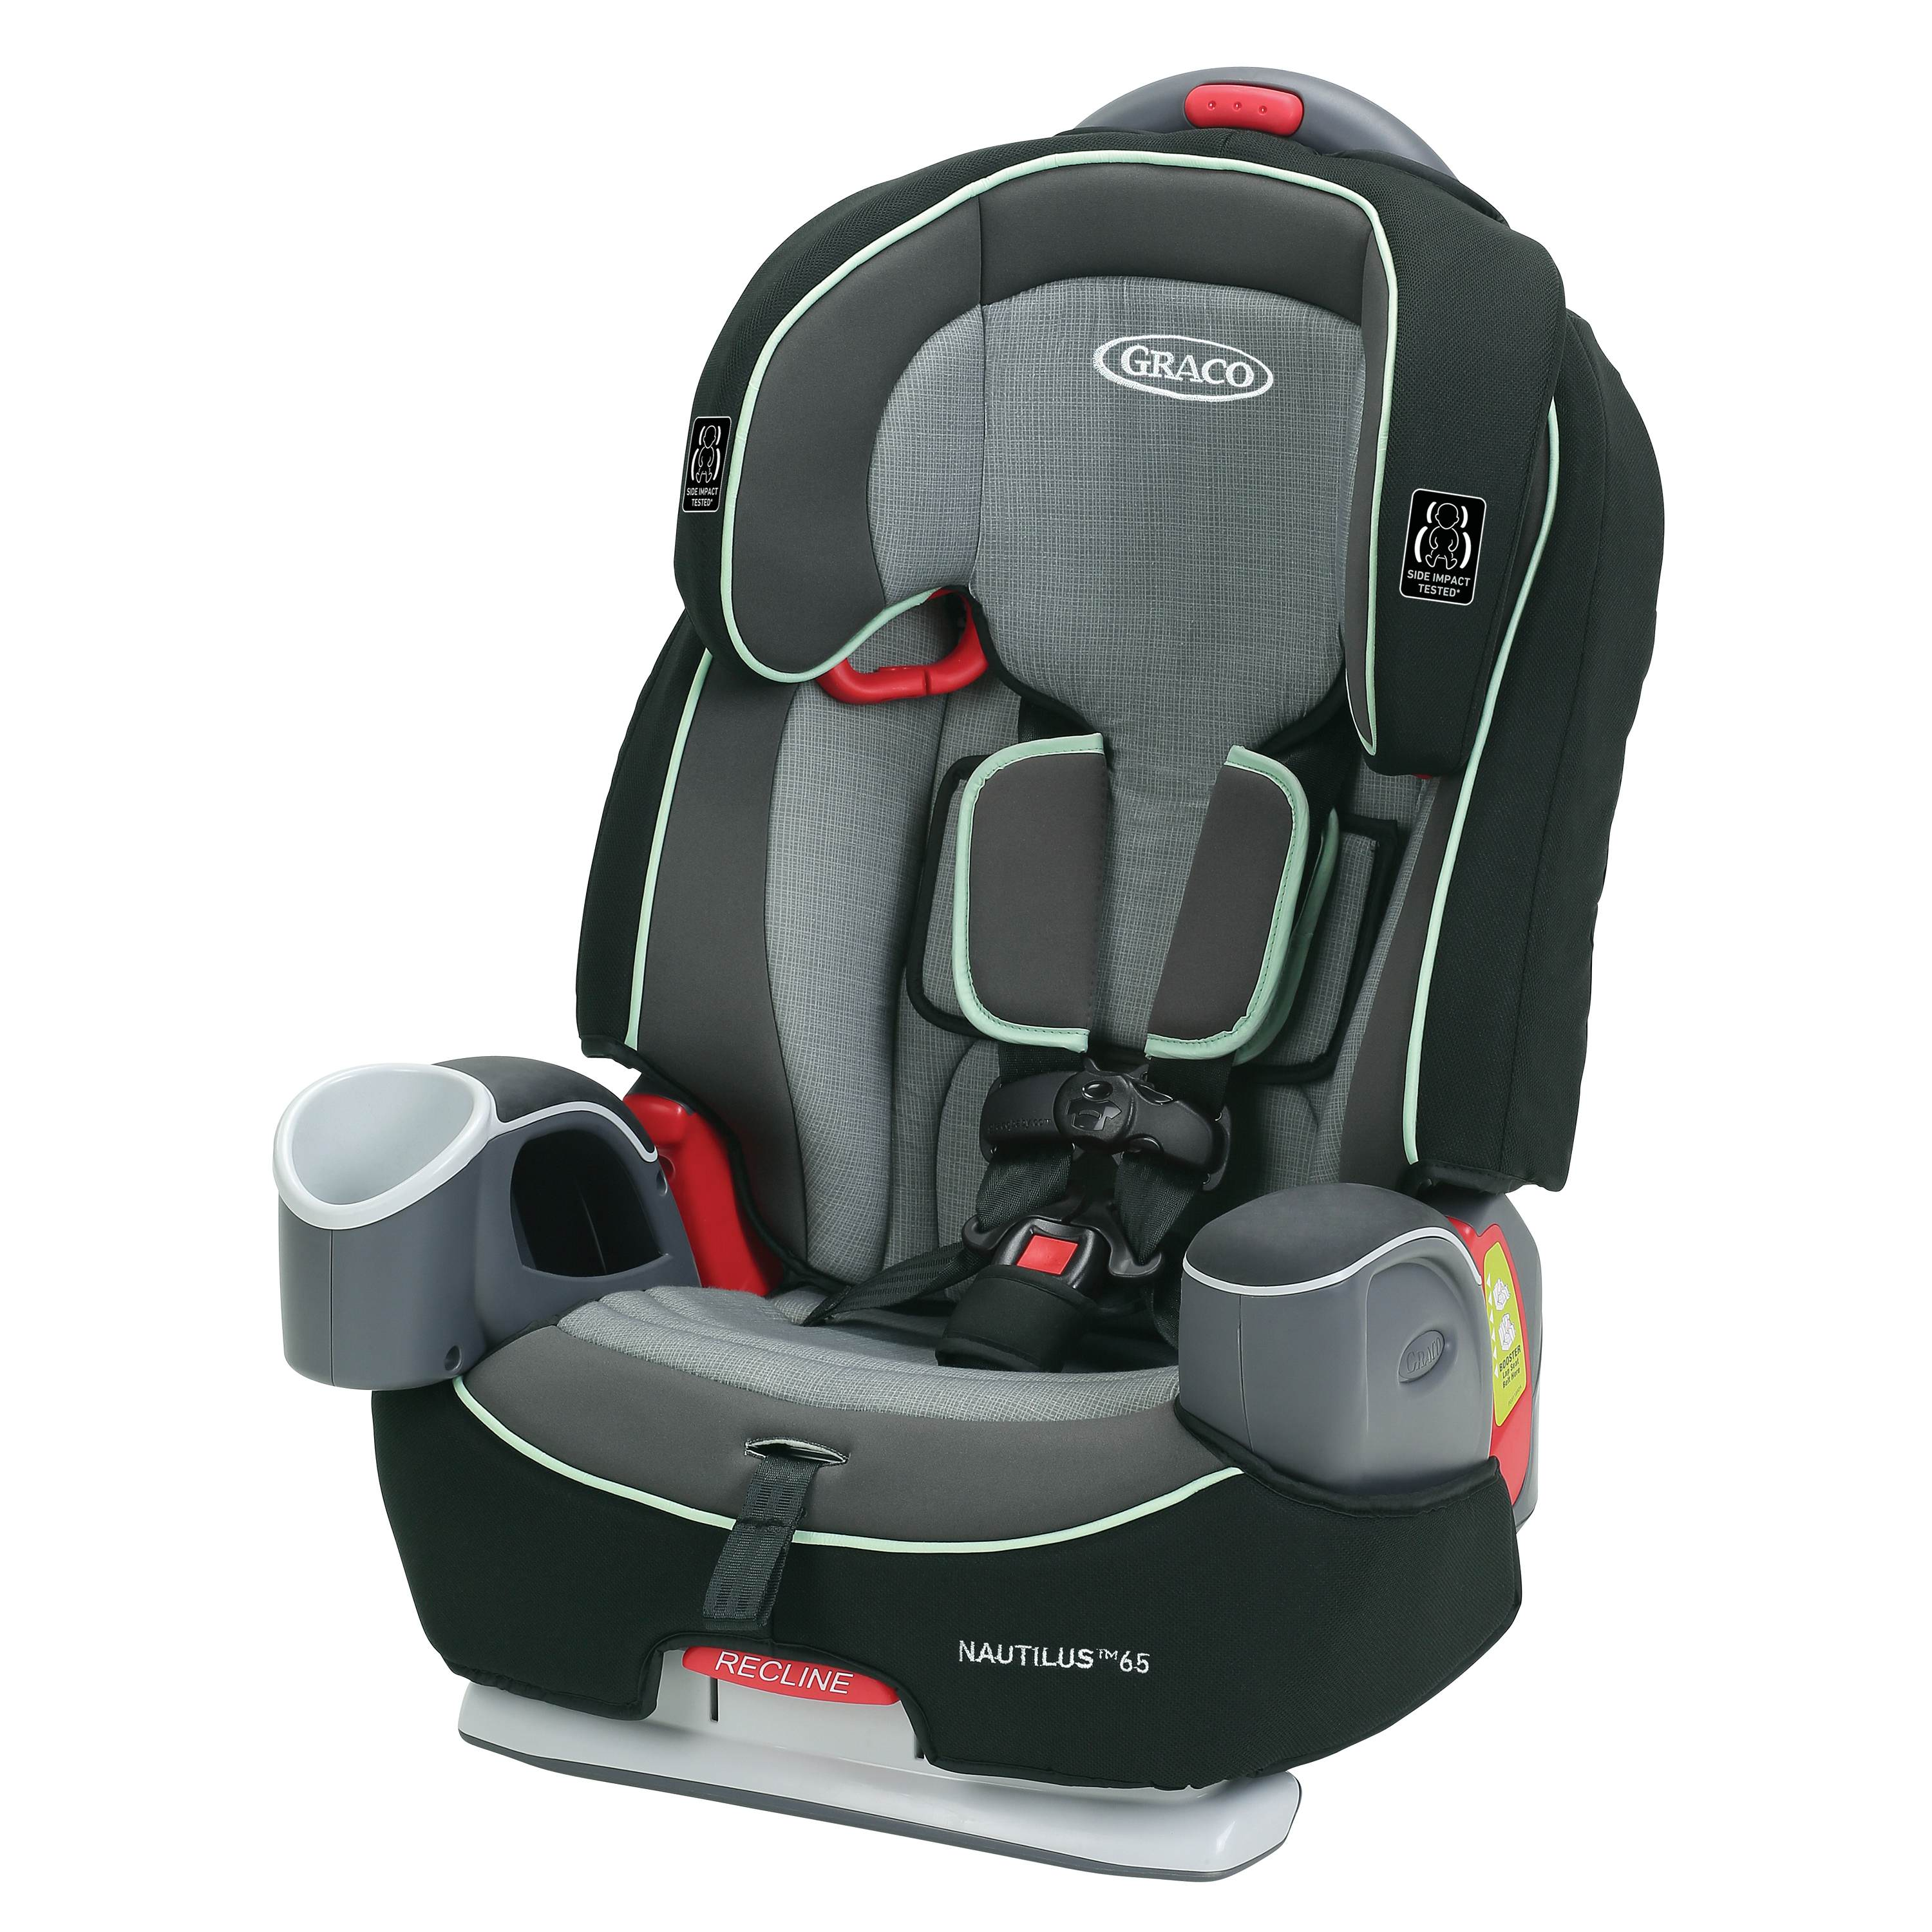 Graco Nautilus 65 3-in-1 Harness Booster Landry